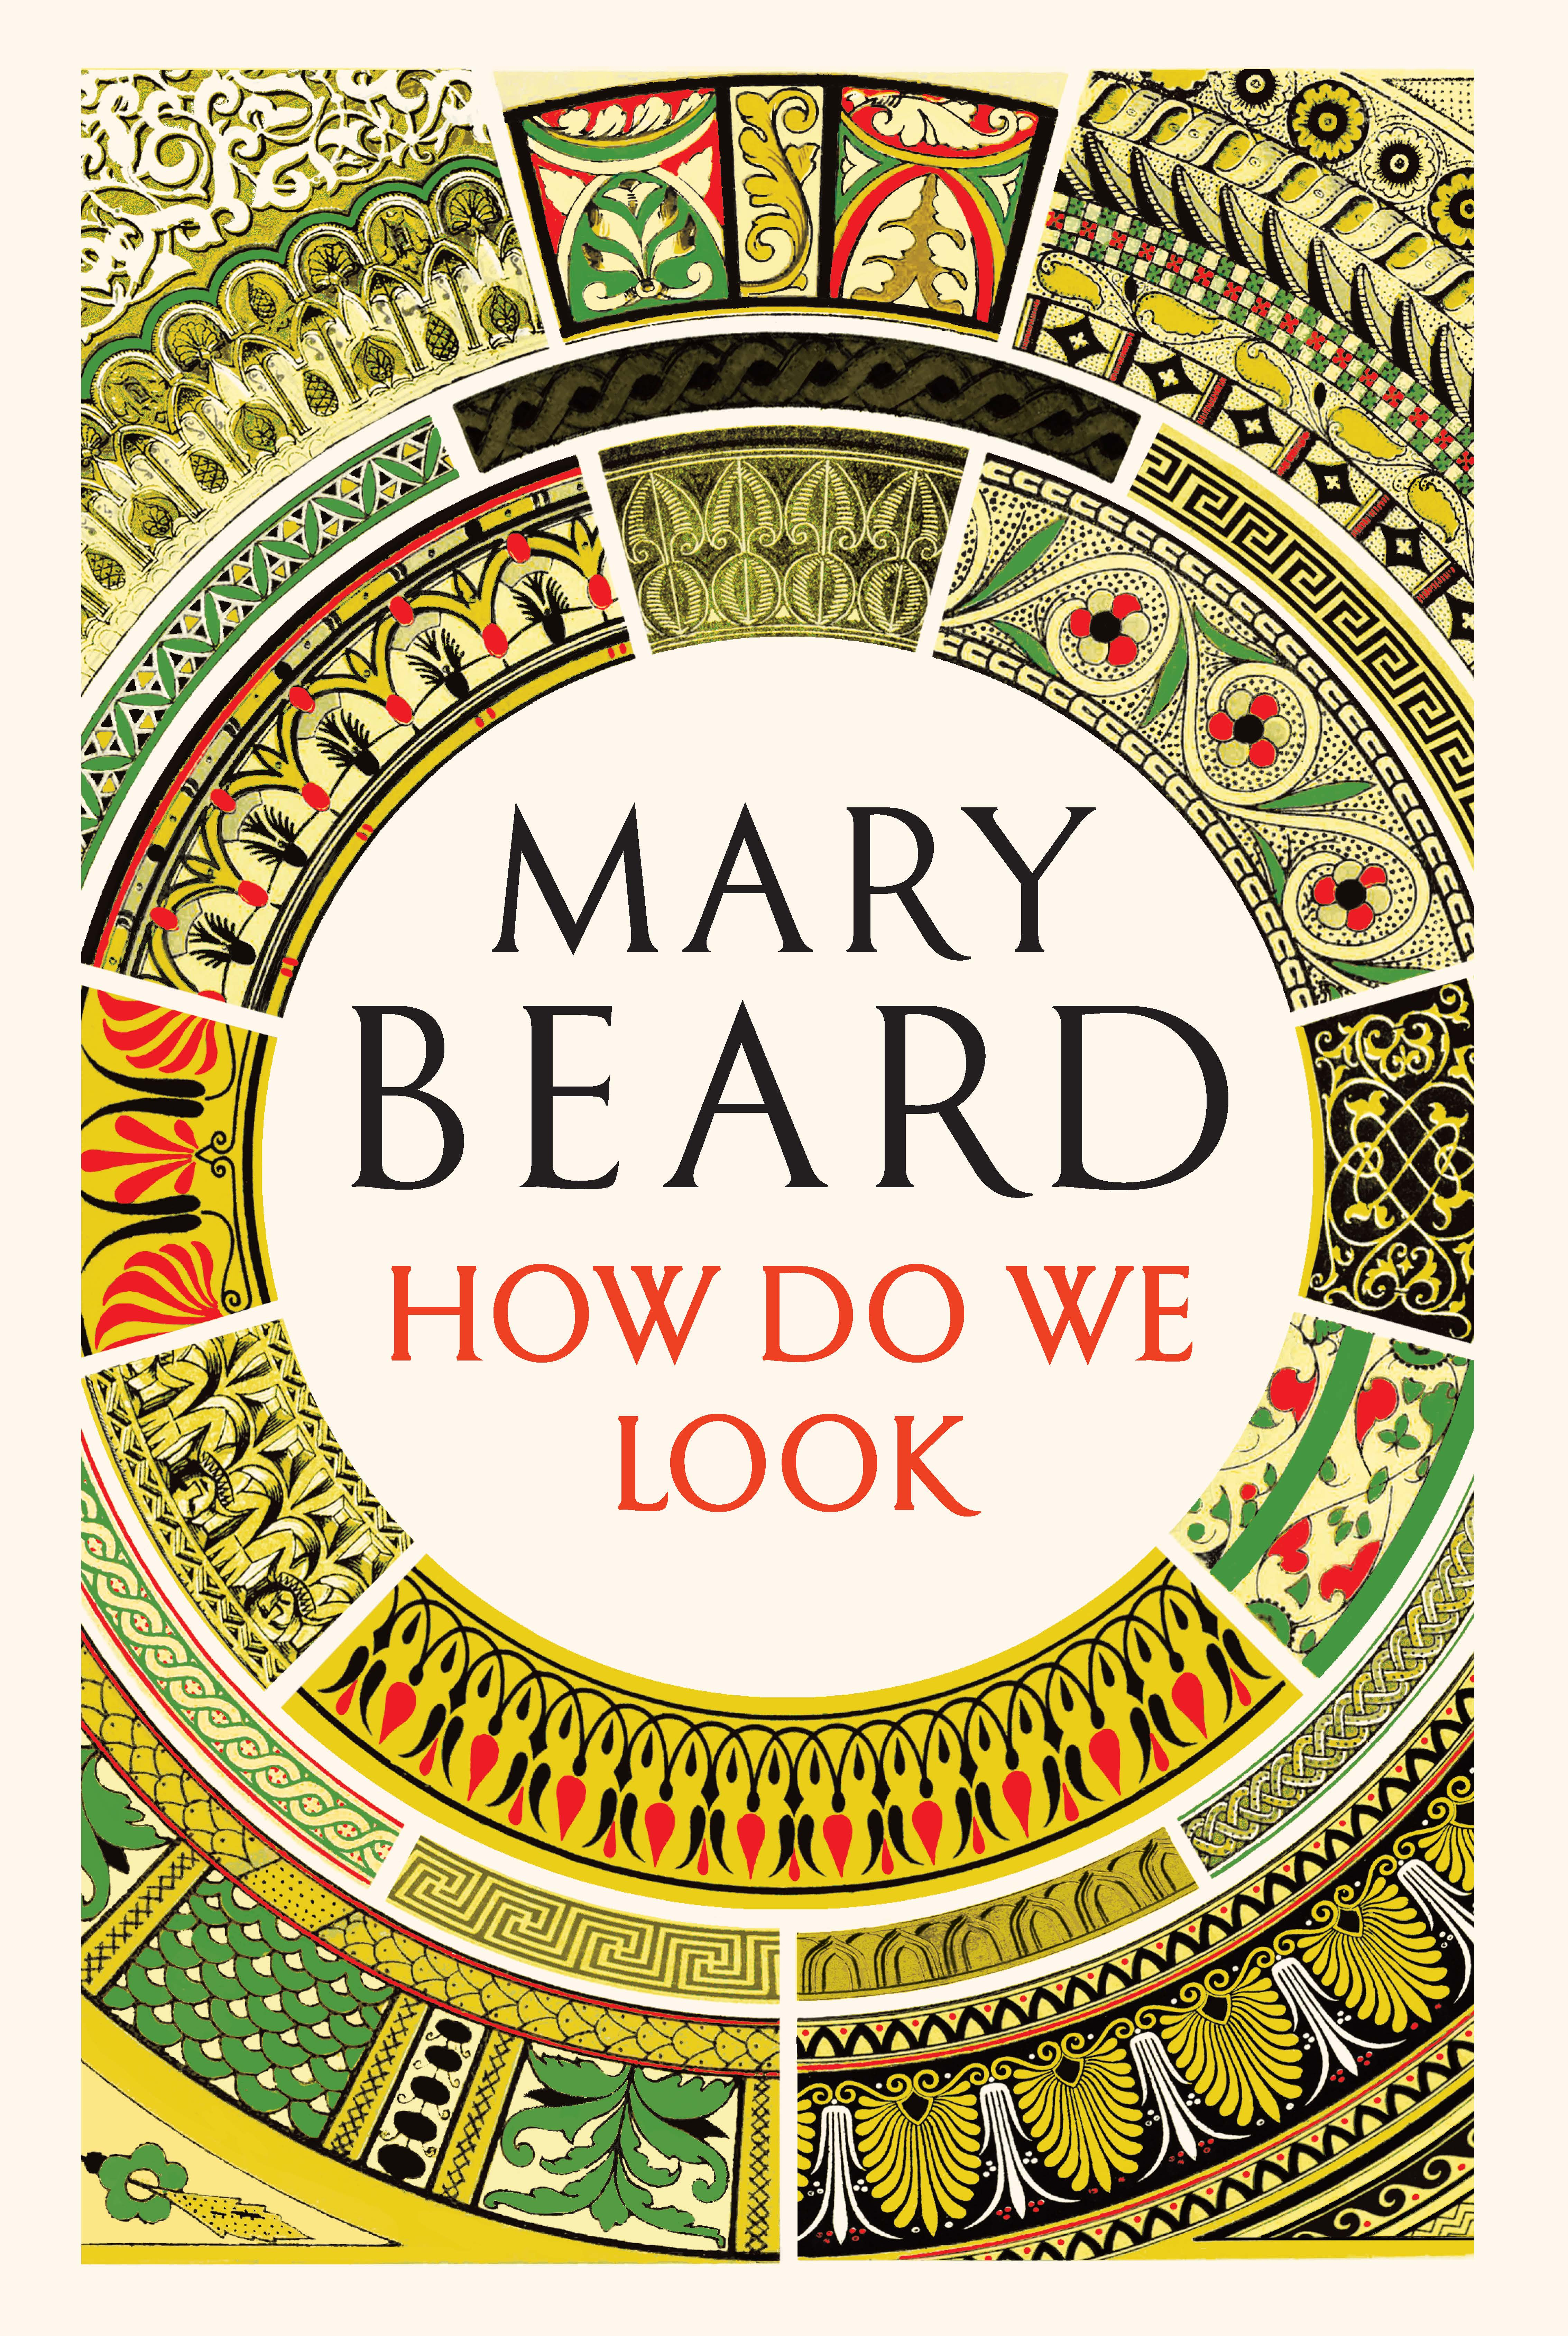 Mary Beard's new book shifts the focus of art history away from the artist